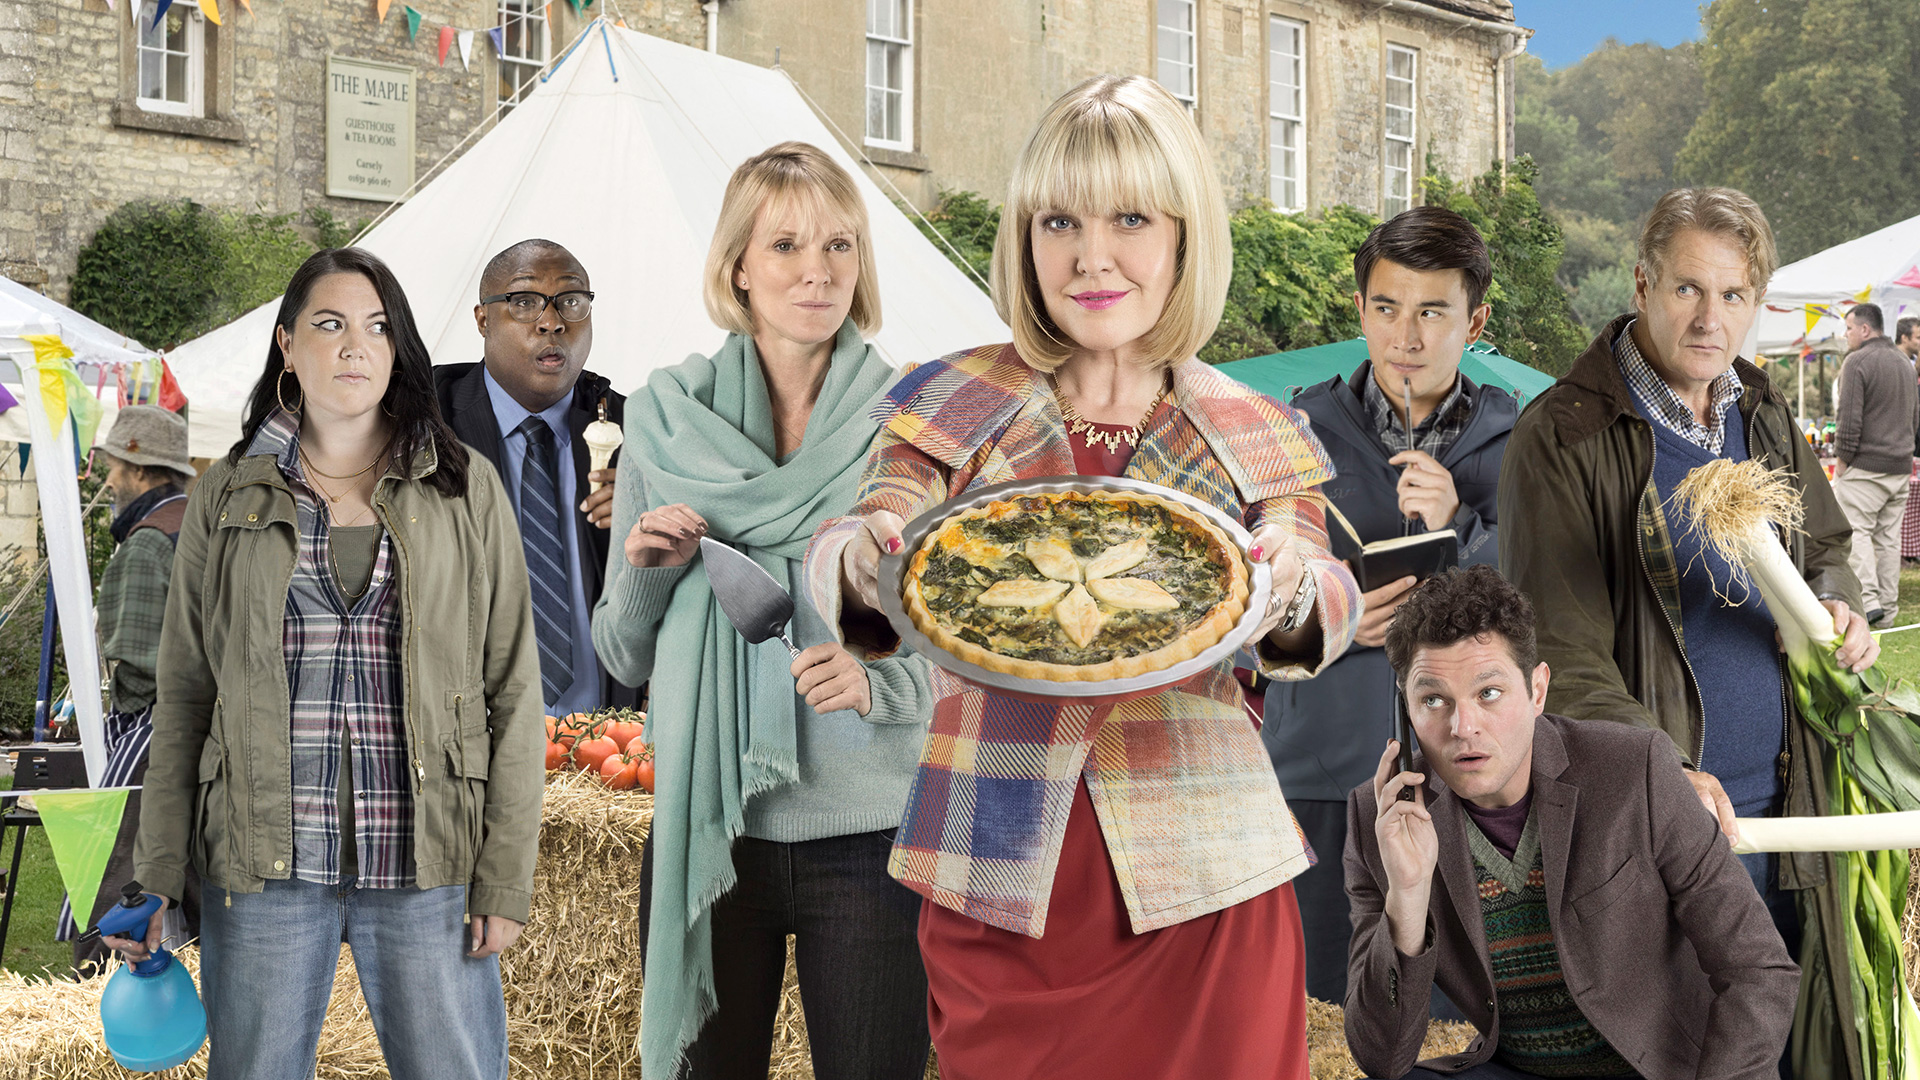 Agatha Raisin stars Ashley Jensen as the Cotswolds-based PR guru turned amateur sleuth.